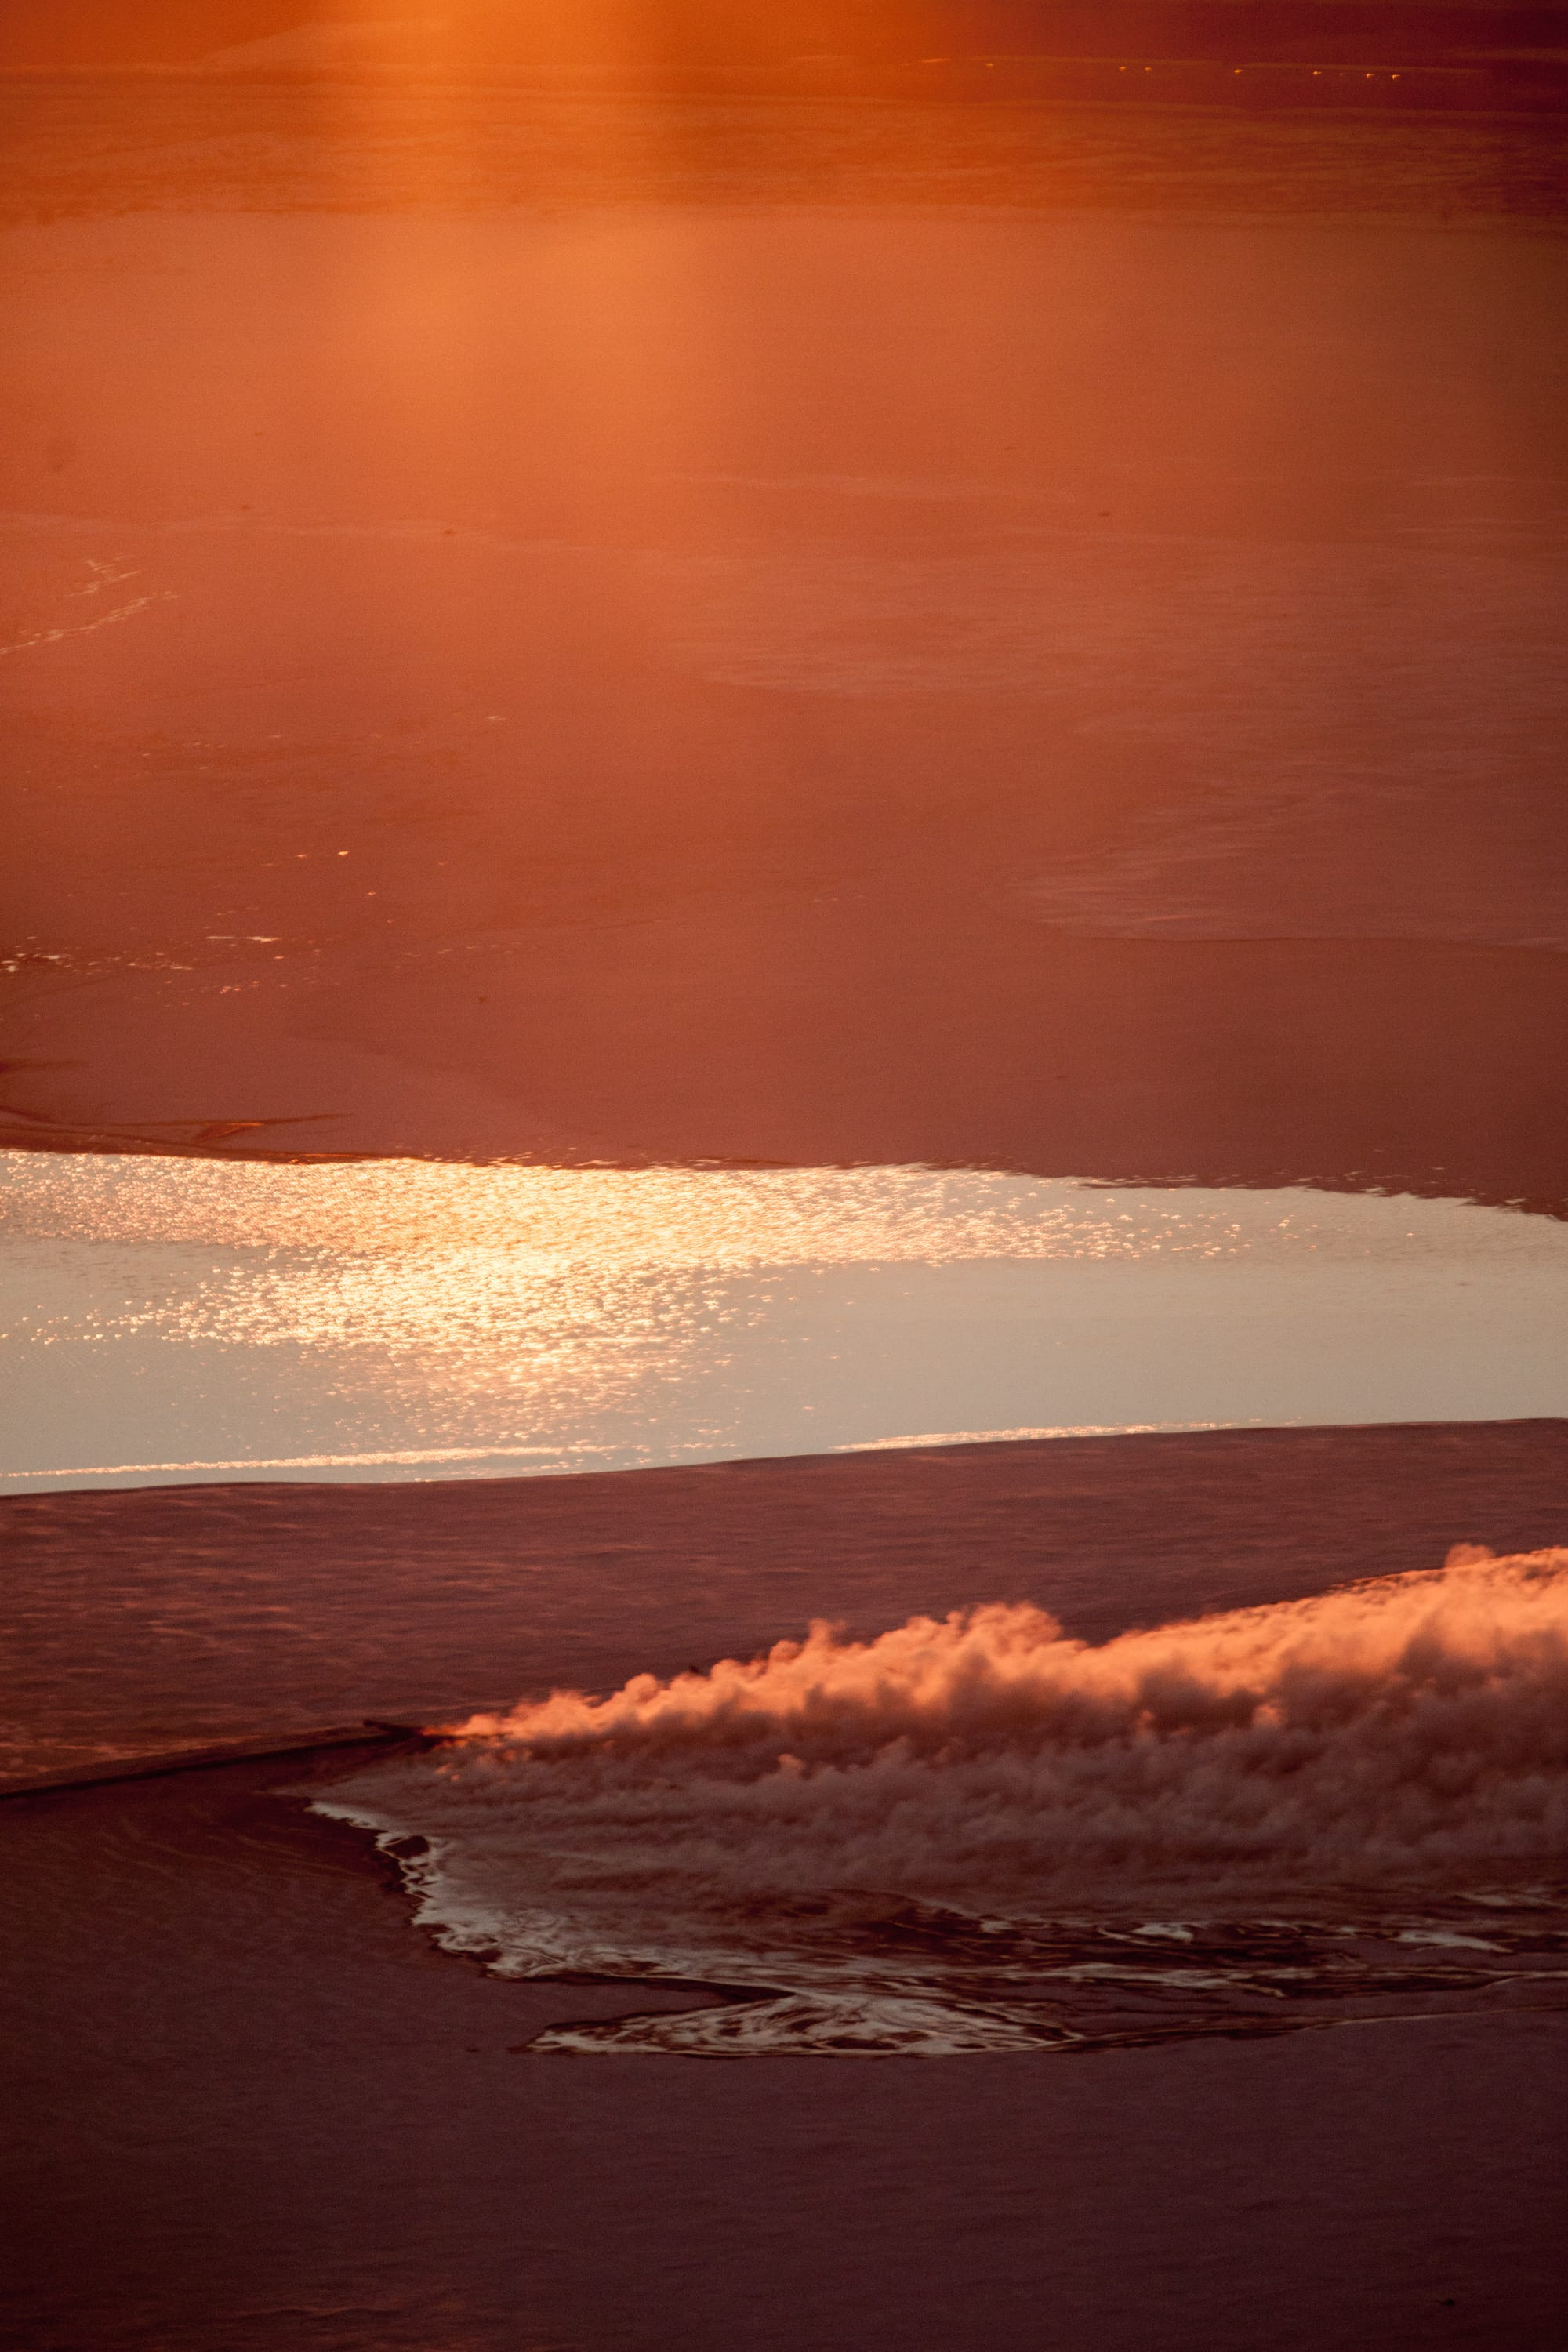 Tailings Pond, Oilsands Cancer Story